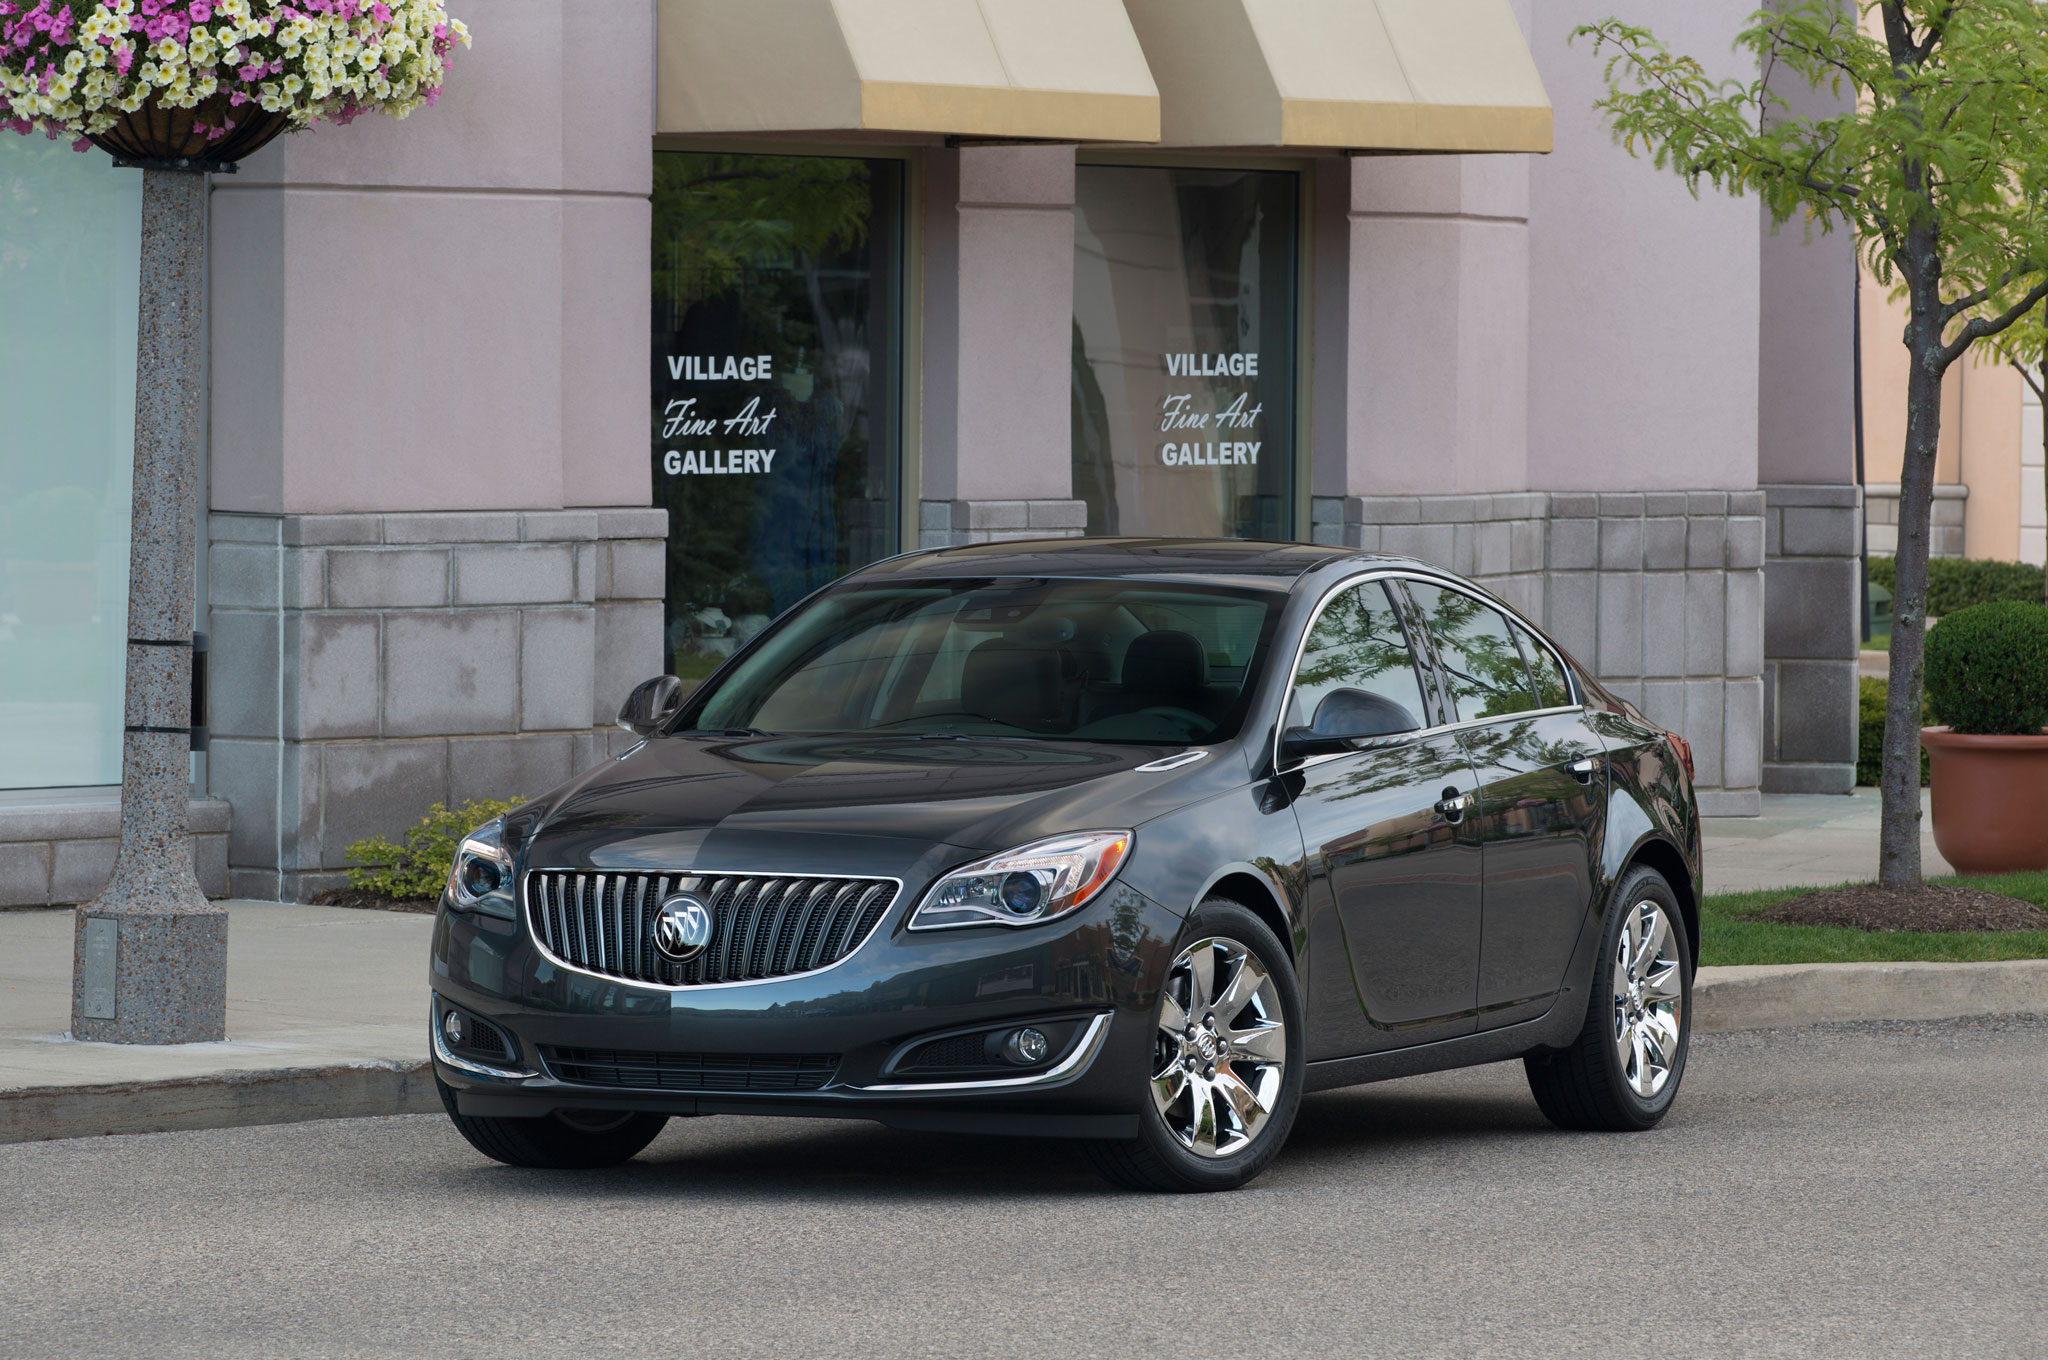 2014 Buick Regal First Drive - Automobile Magazine